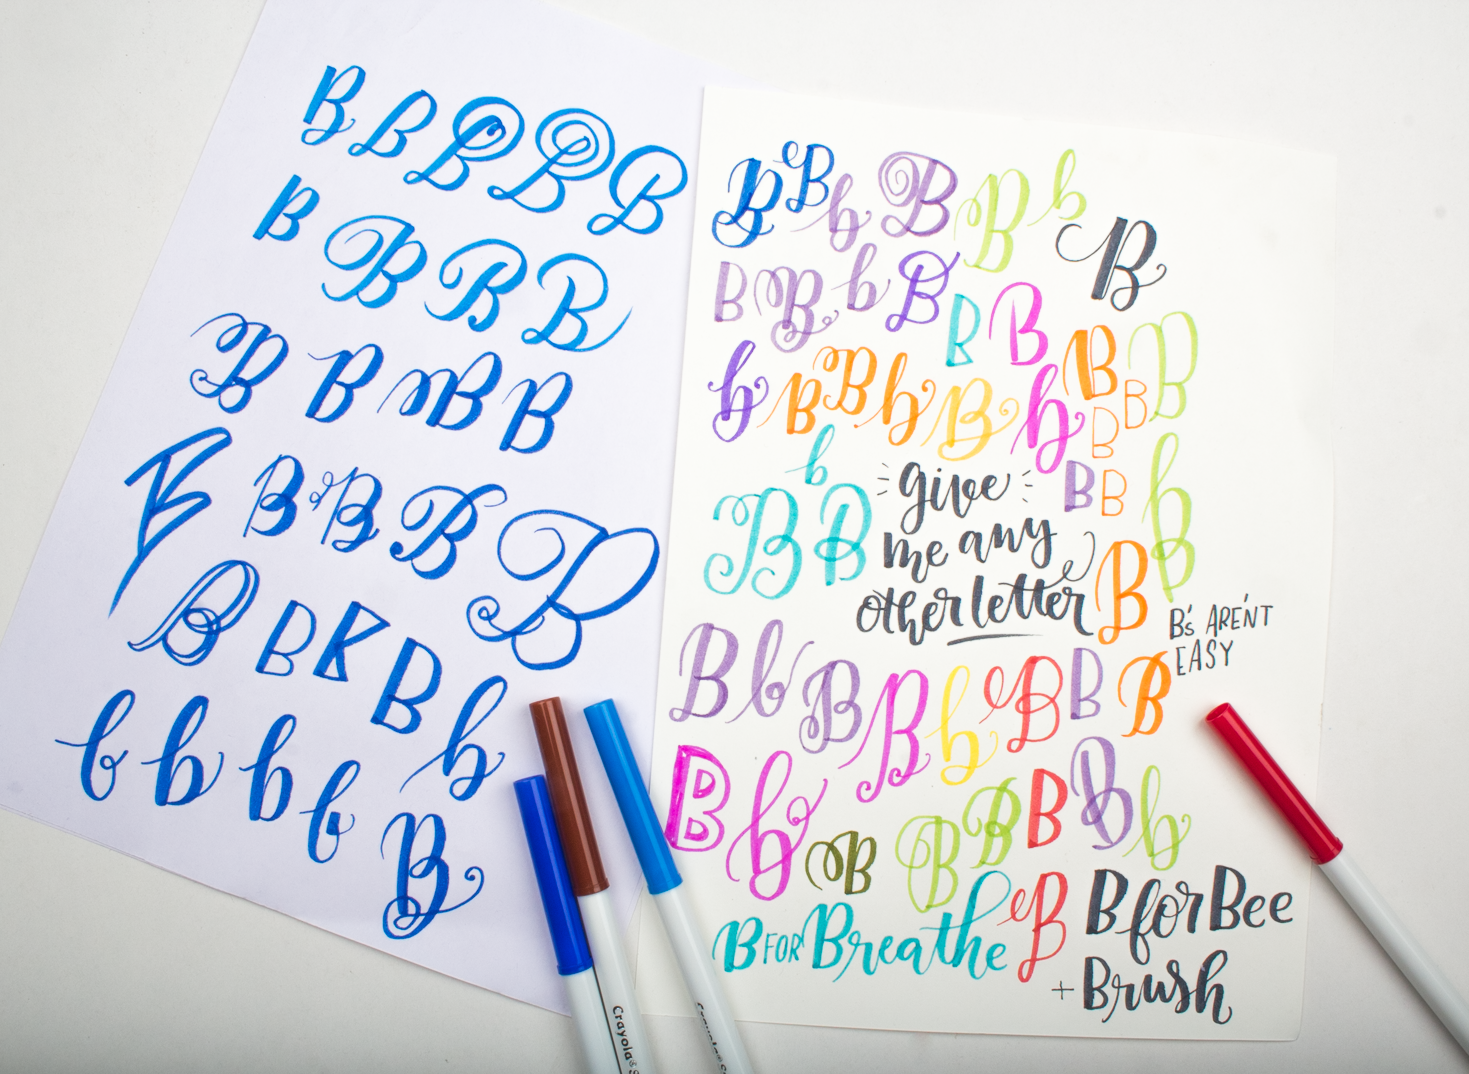 Tools + B. Lettering Challenge for June on instagram @surelysimpleblog and @surelysimplechallenge. An alphabet a day and then some! JOIN IN THE FUN! Here are the calligraphy drills to get started.